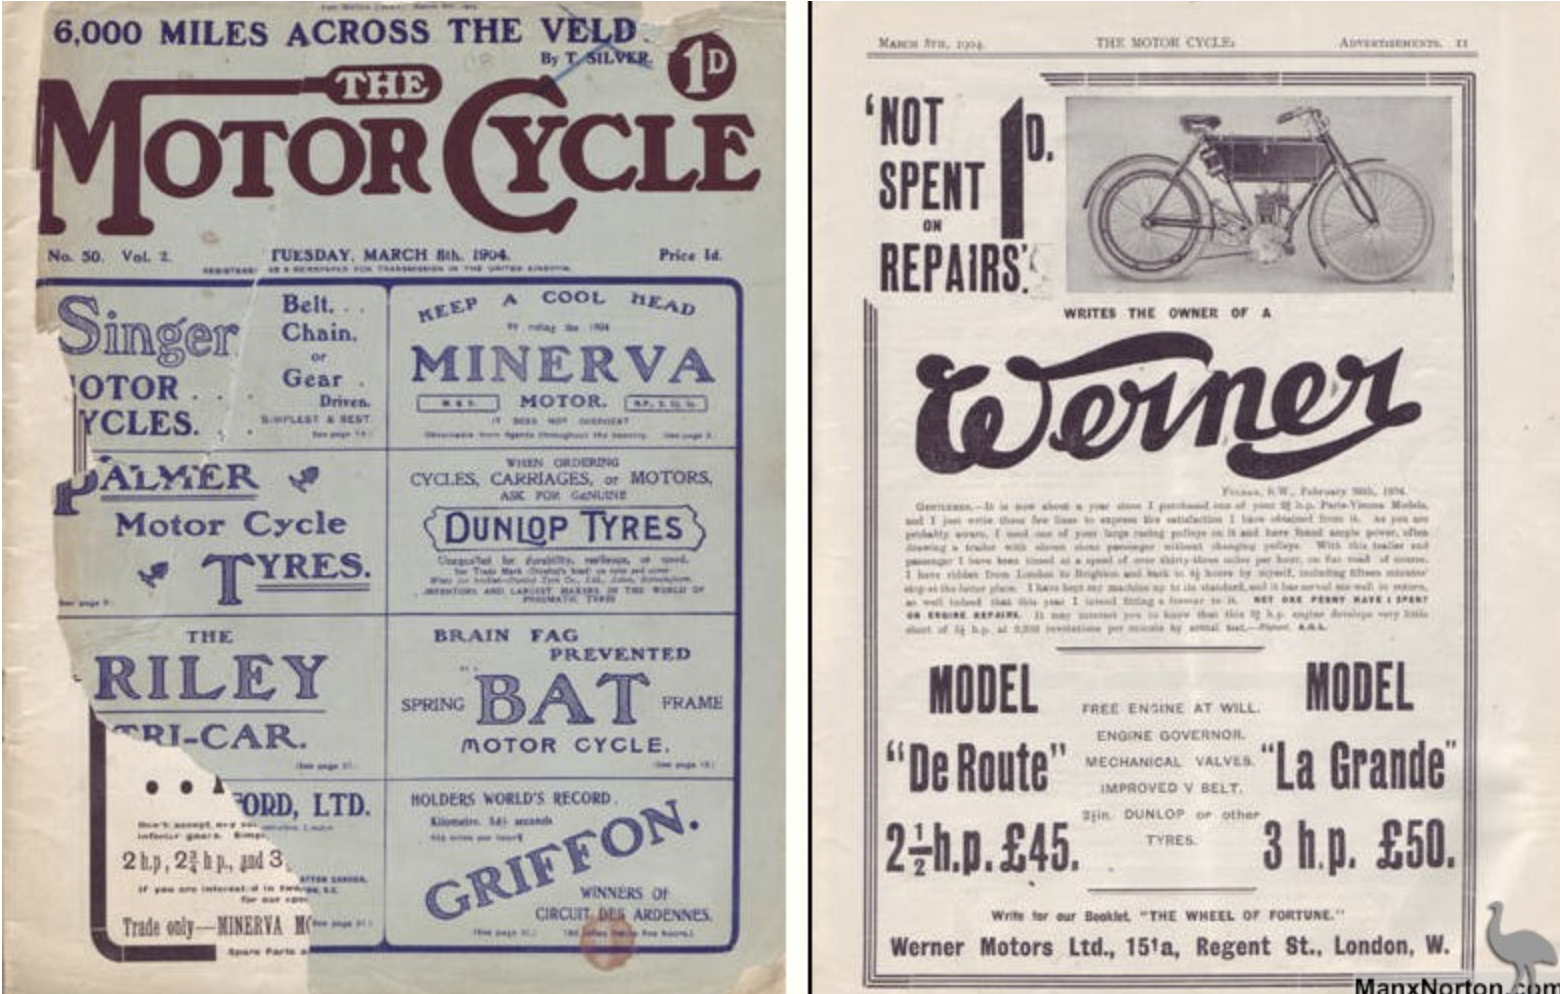 An early 1904 edition of The Motor Cycle, cost one penny. This was published just a few months after the magazine was founded in 1903. Ixion hsd started his weeky column which continued for the next sixty years. (Image courtesty of  Dropbears.com